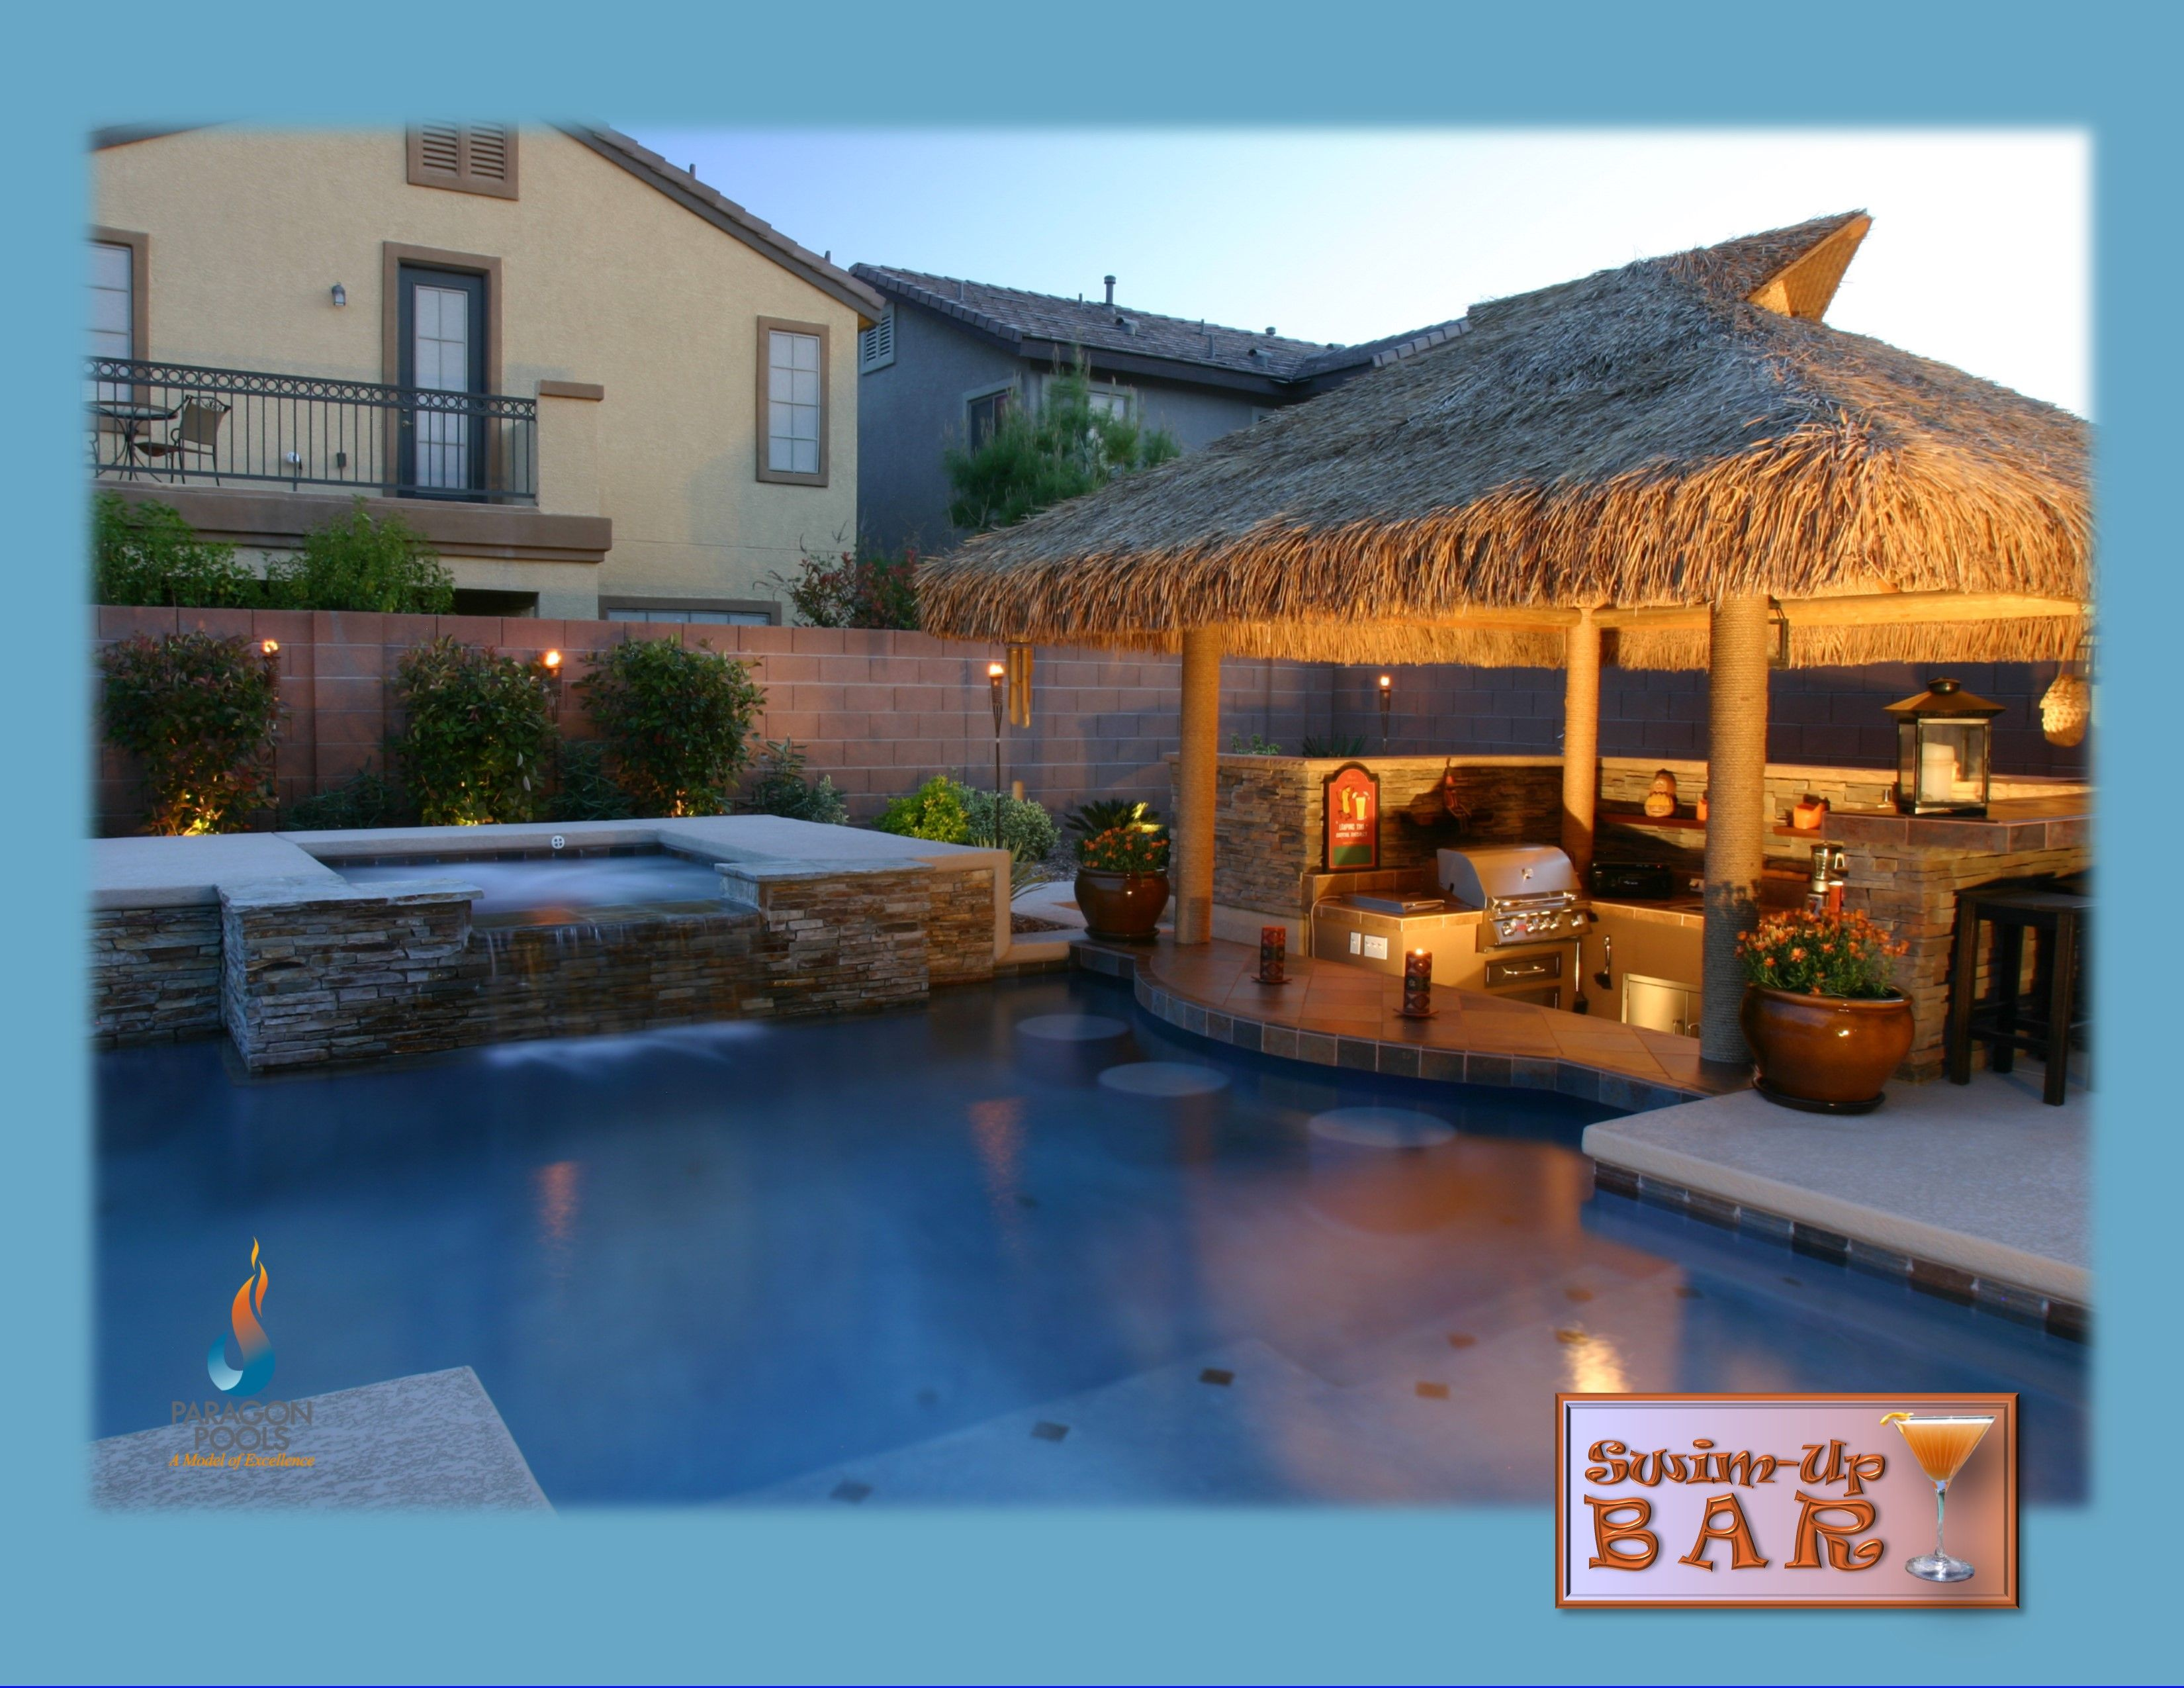 Palapa Covered Sunken Outdoor Kitchen With A 3 Stool Swim Up Bar Outdoor Kitchen Design Layout Outdoor Kitchen Ideas Awesome Outdoor Kitchen Design